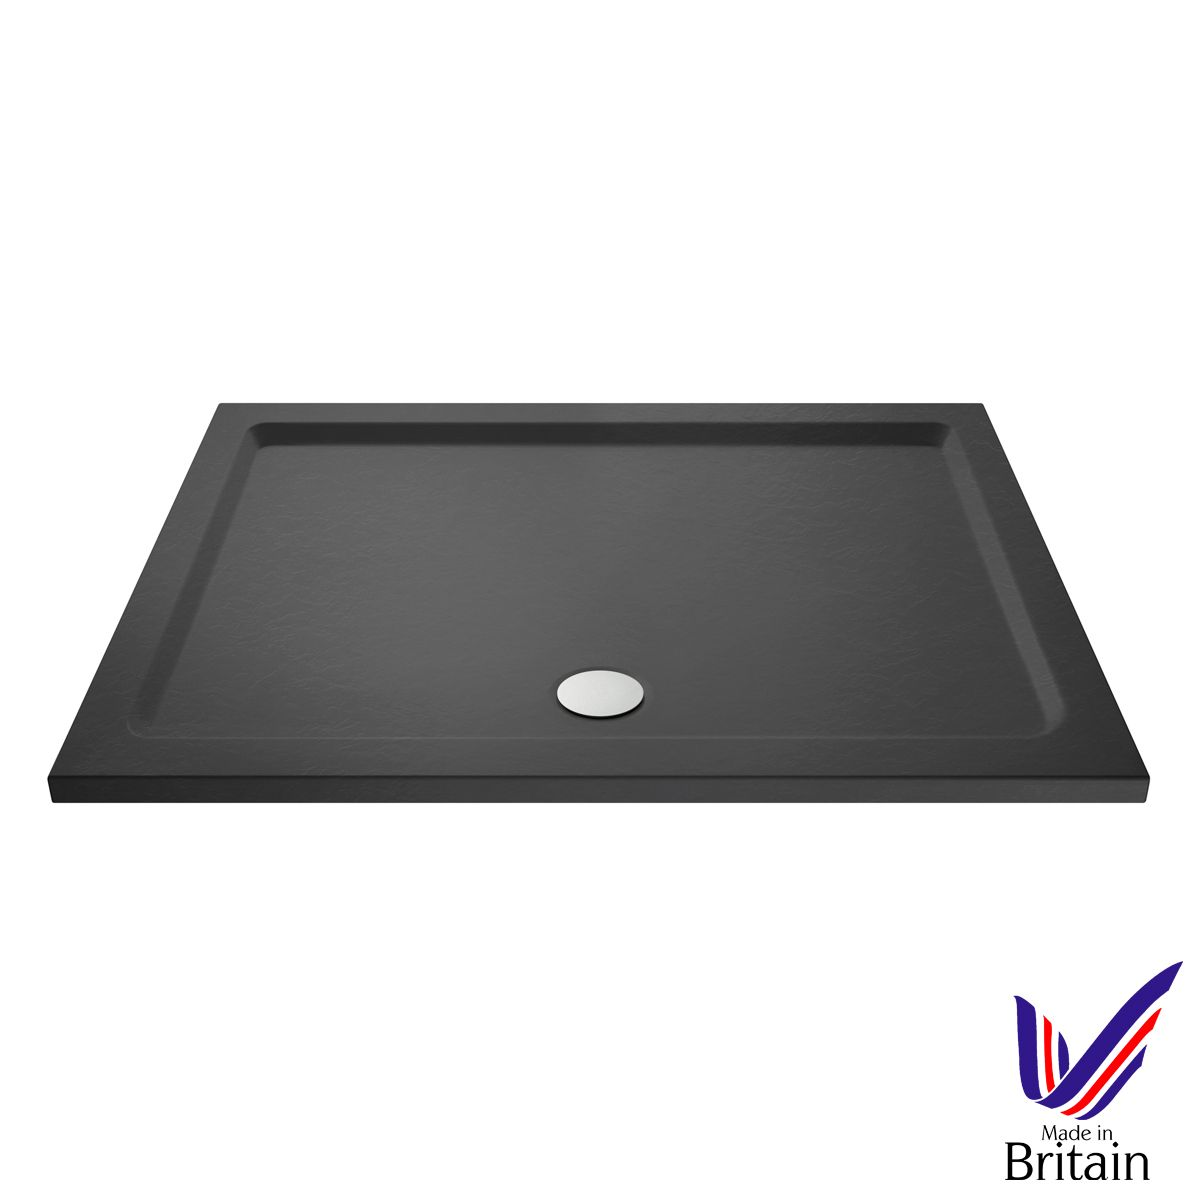 1800 x 800 Shower Tray Slate Grey Rectangular Low Profile by Pearlstone